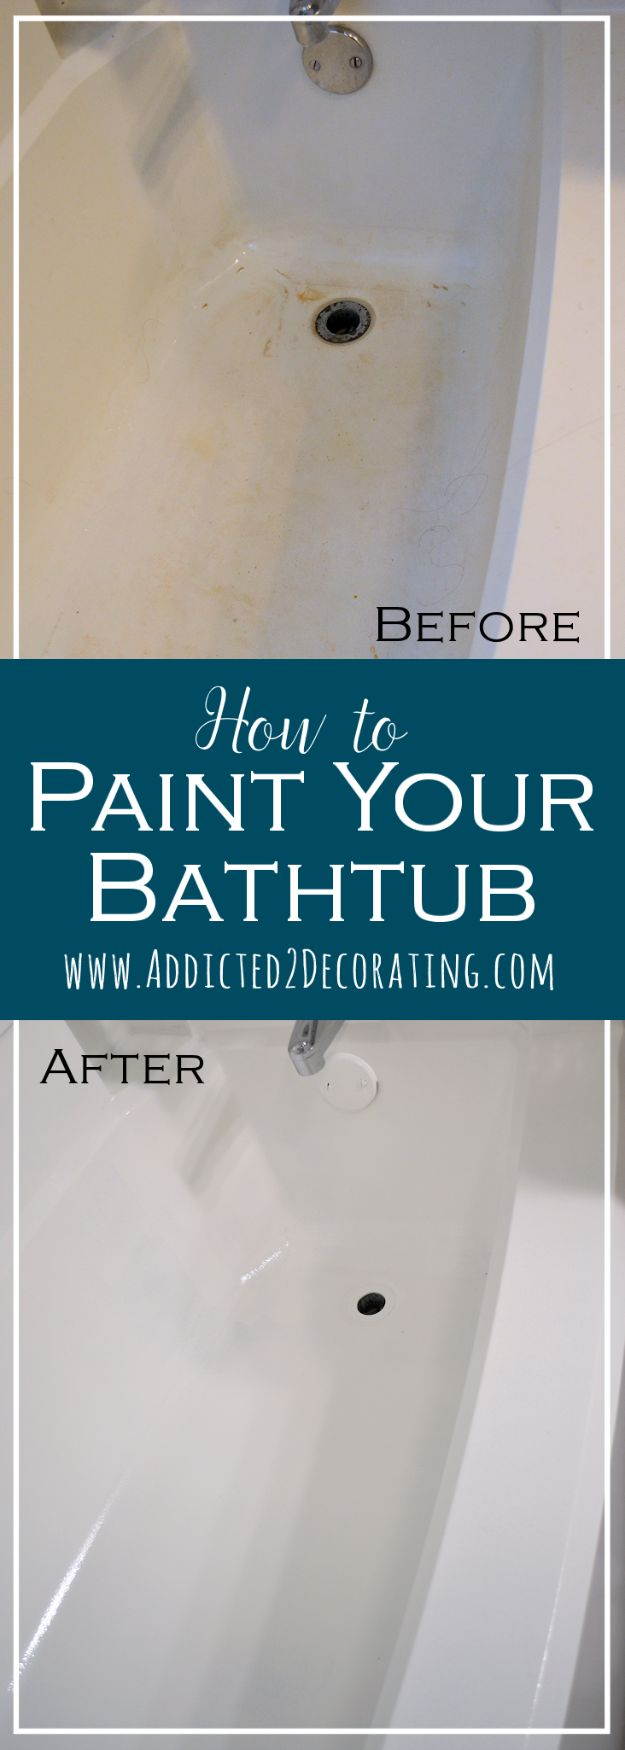 Easy Home Repair Hacks - Paint A Bathtub - Quick Ways to Easily Fix Broken Things Around The House - DIY Tricks for Home Improvement and Repairs - Simple Solutions for Kitchen, Bath, Garage and Yard - Caulk, Grout, Wall Repair and Wood Patching and Staining http://diyjoy.com/easy-home-repair-hacks